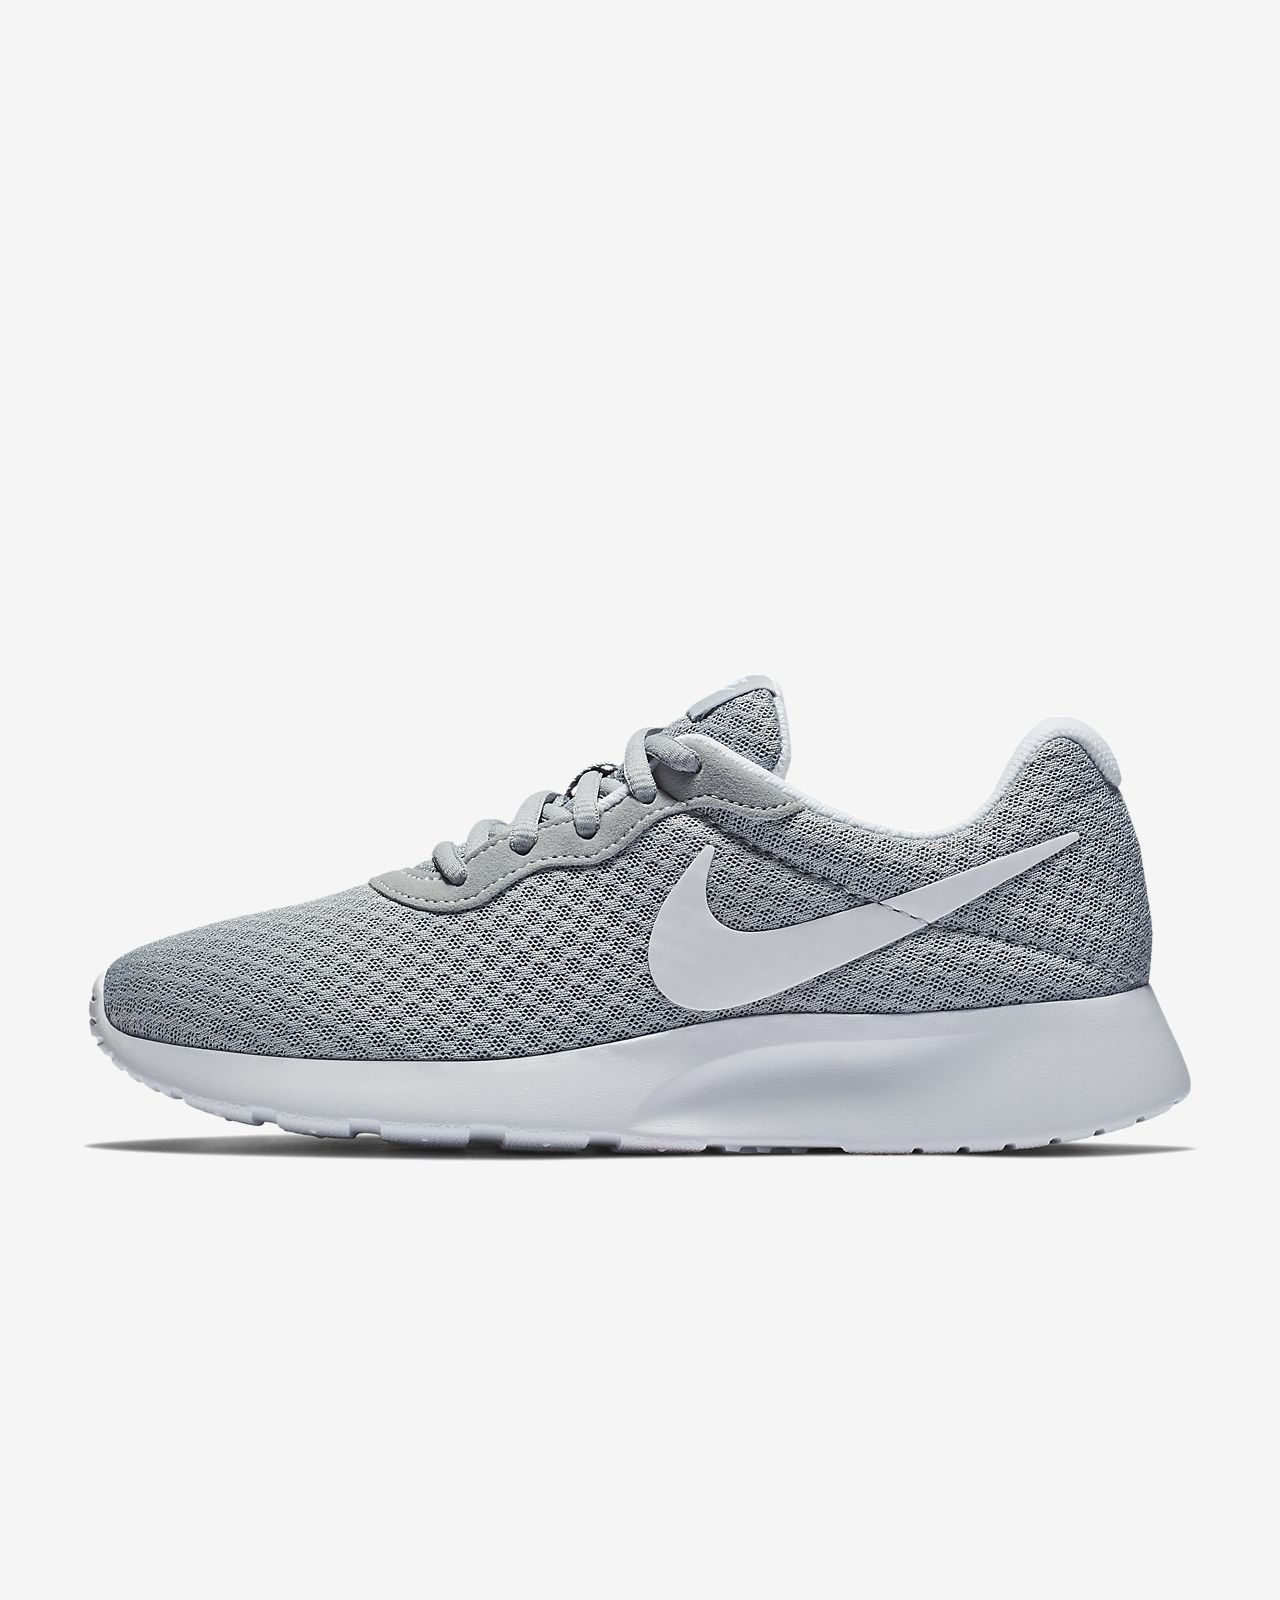 pretty nice 0228b 792d6 Low Resolution Nike Tanjun Damenschuh Nike Tanjun Damenschuh